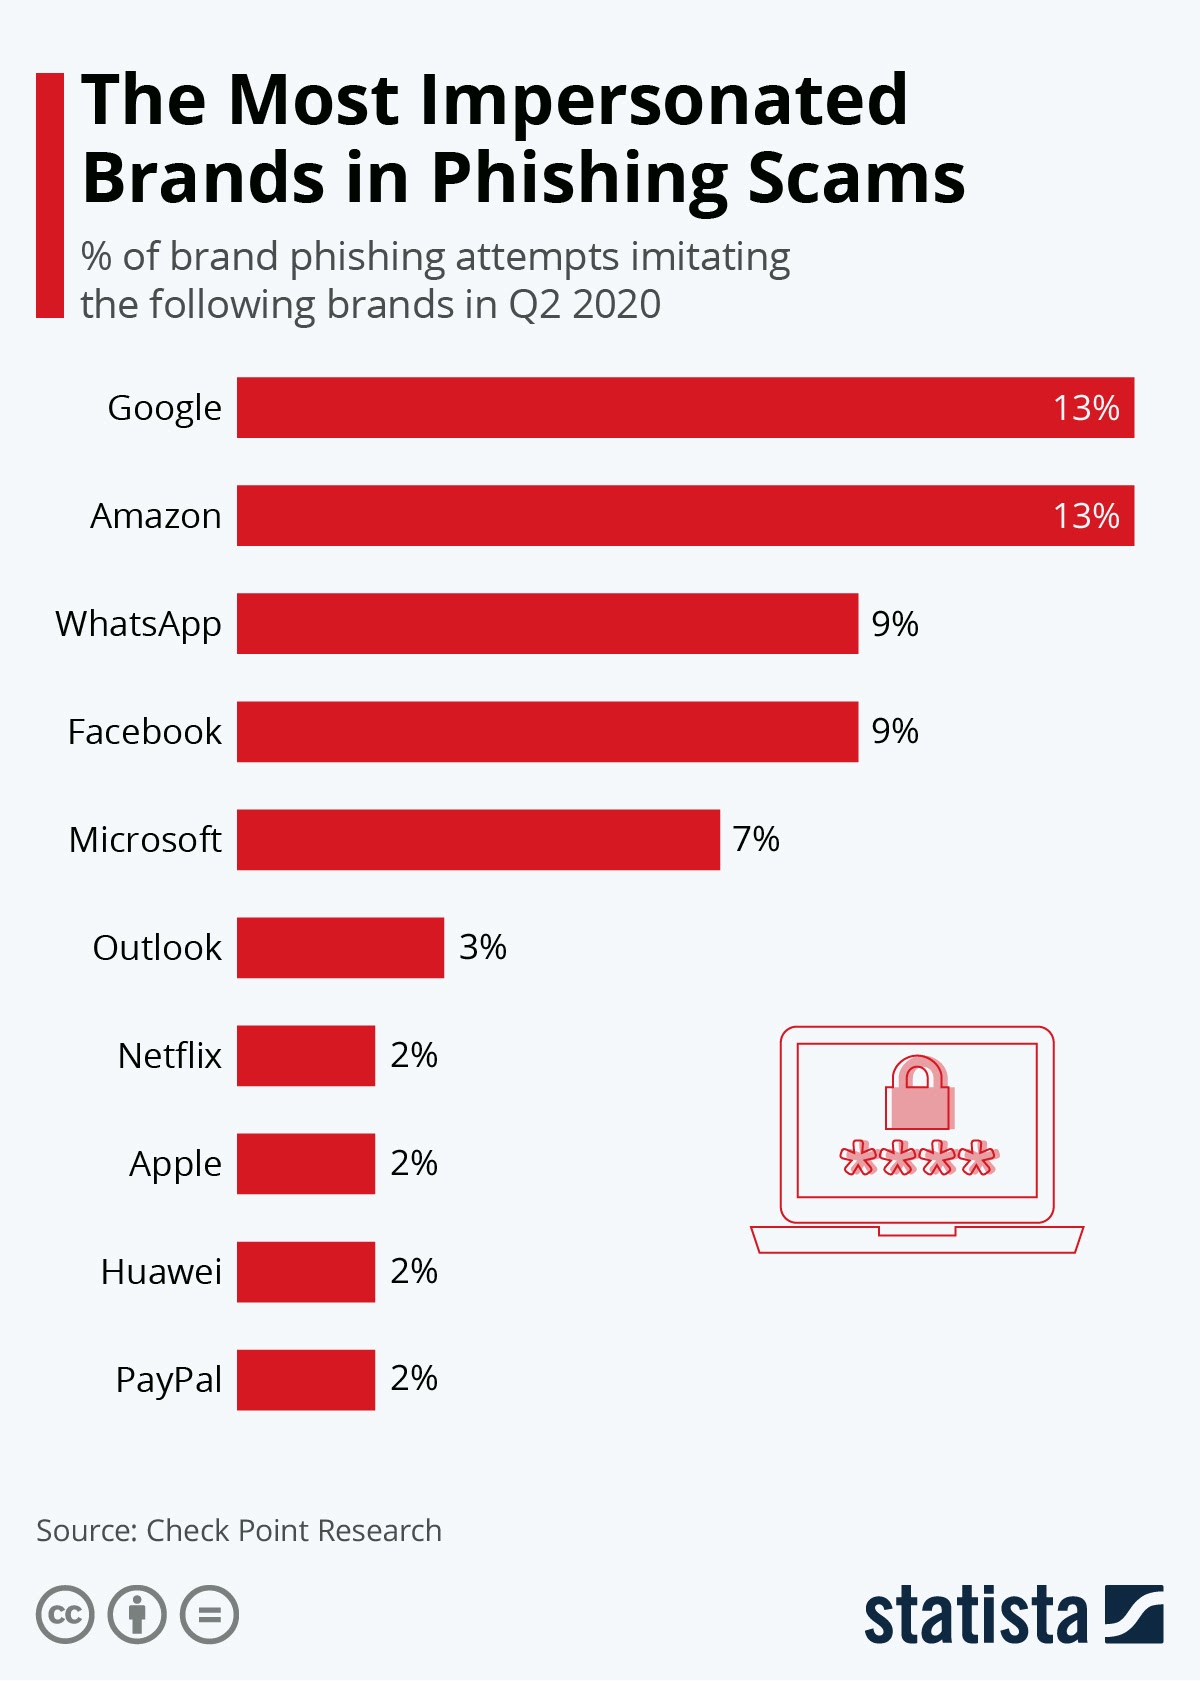 The Most Impersonated Brands in Phishing Scams #Infographic